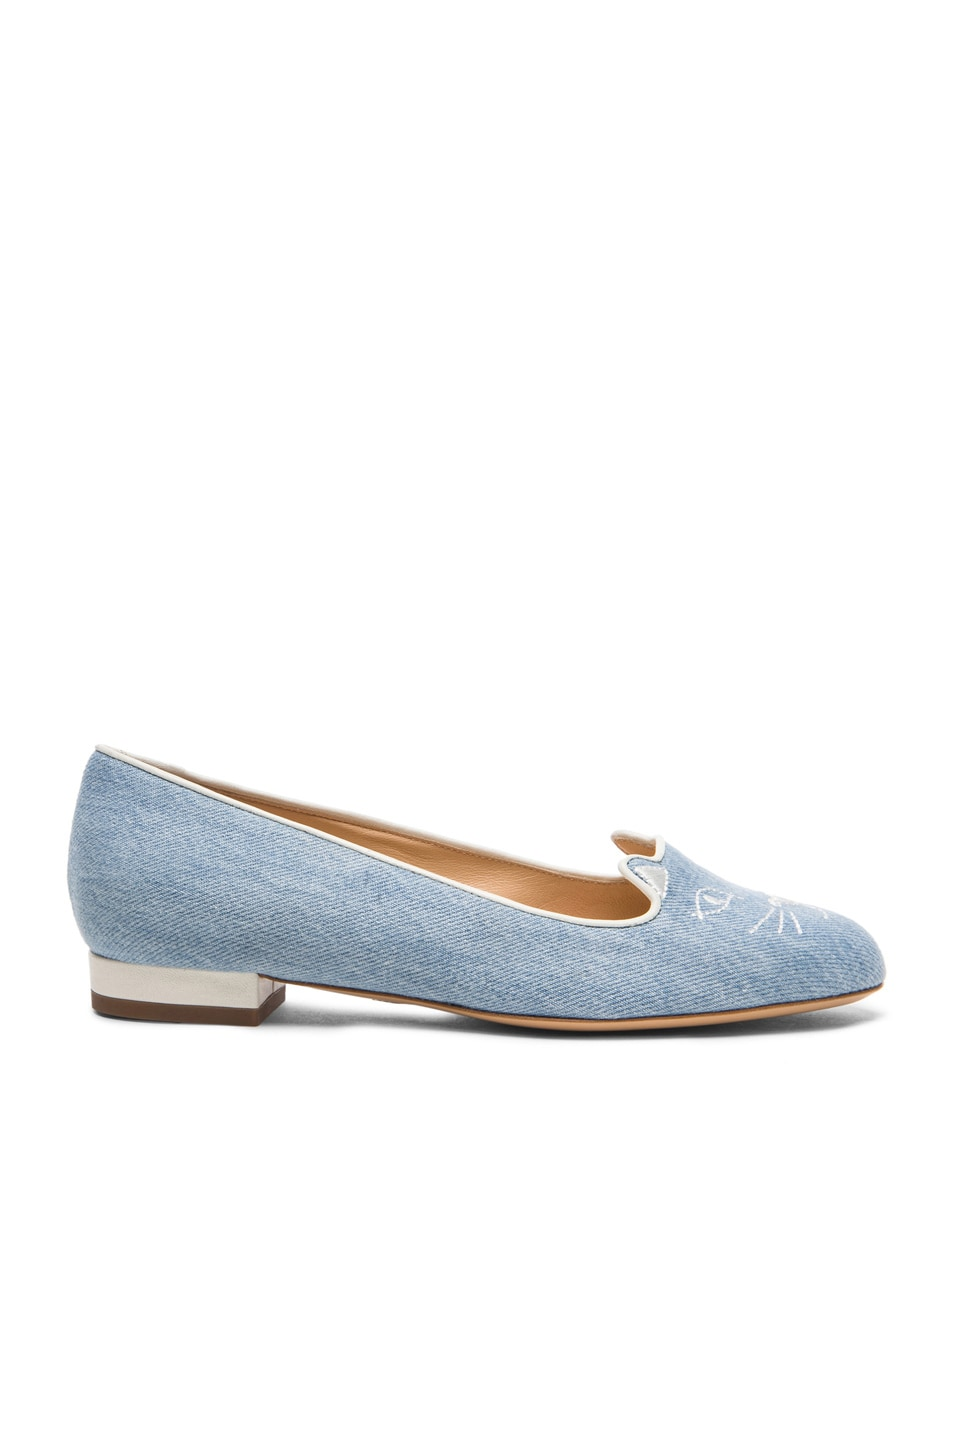 Image 2 of Charlotte Olympia Kitty Denim Flats in Washed Denim